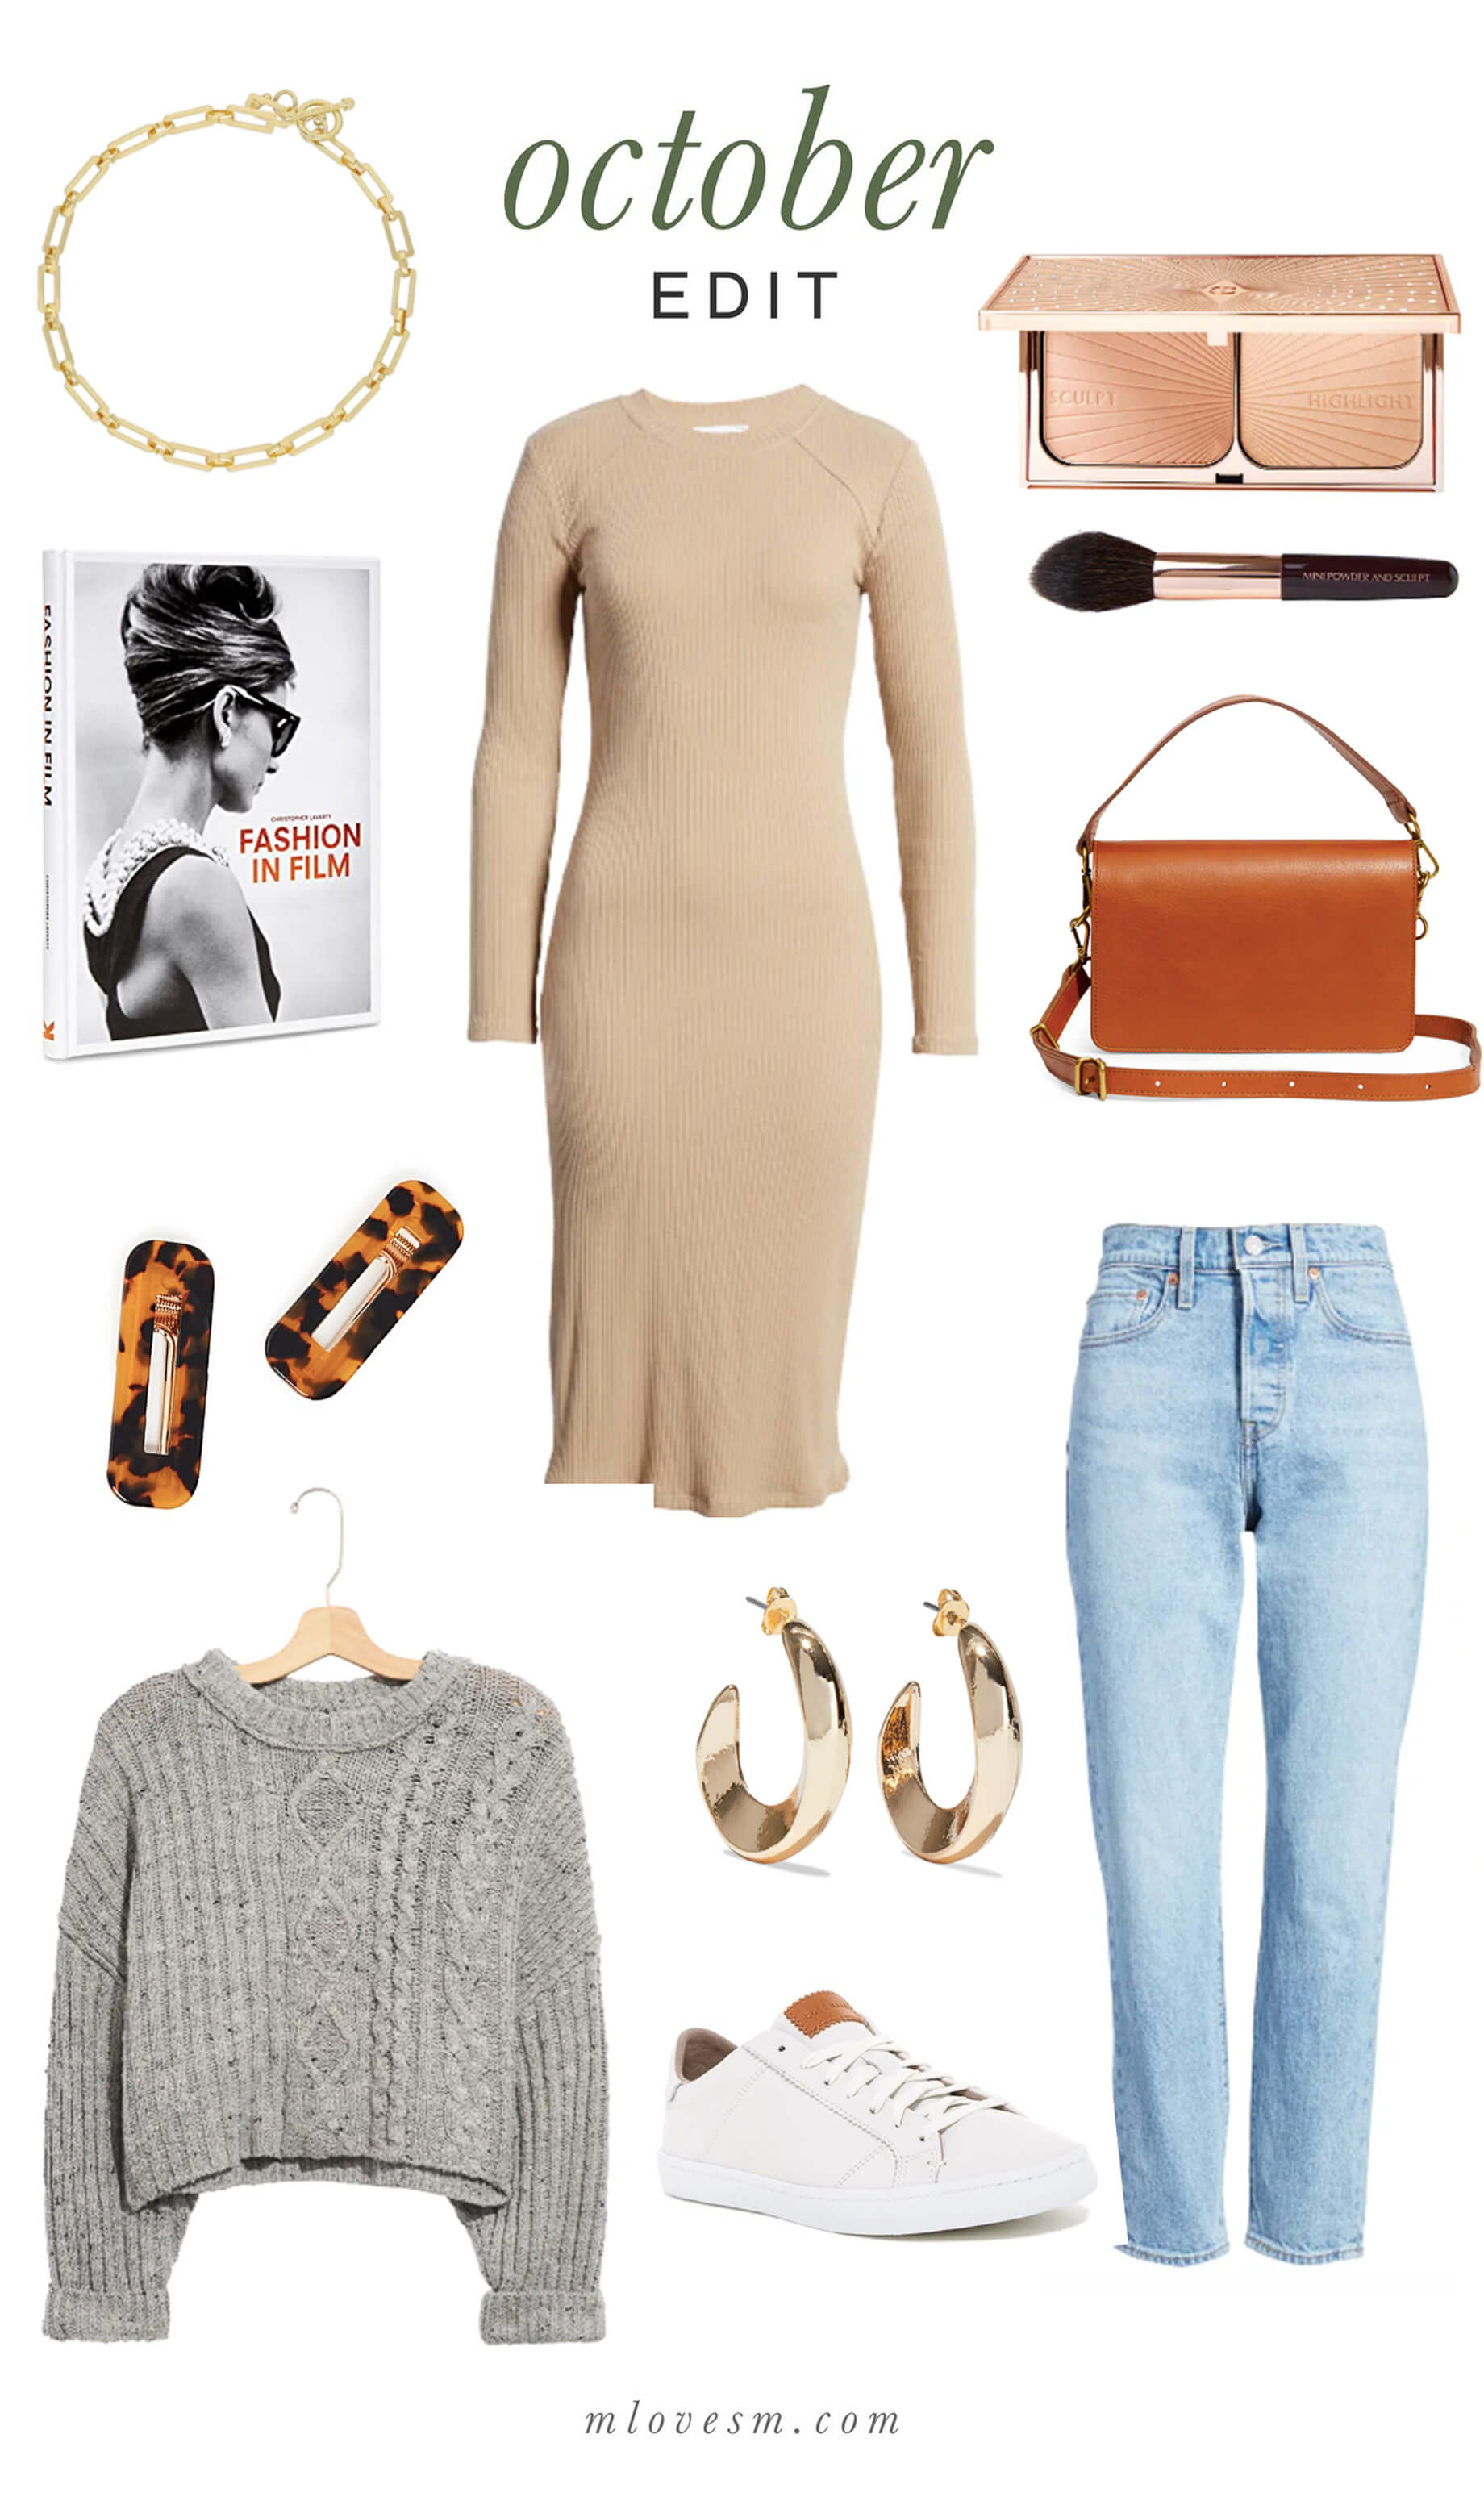 october edit - california casual style inspiration - M Loves M @marmar